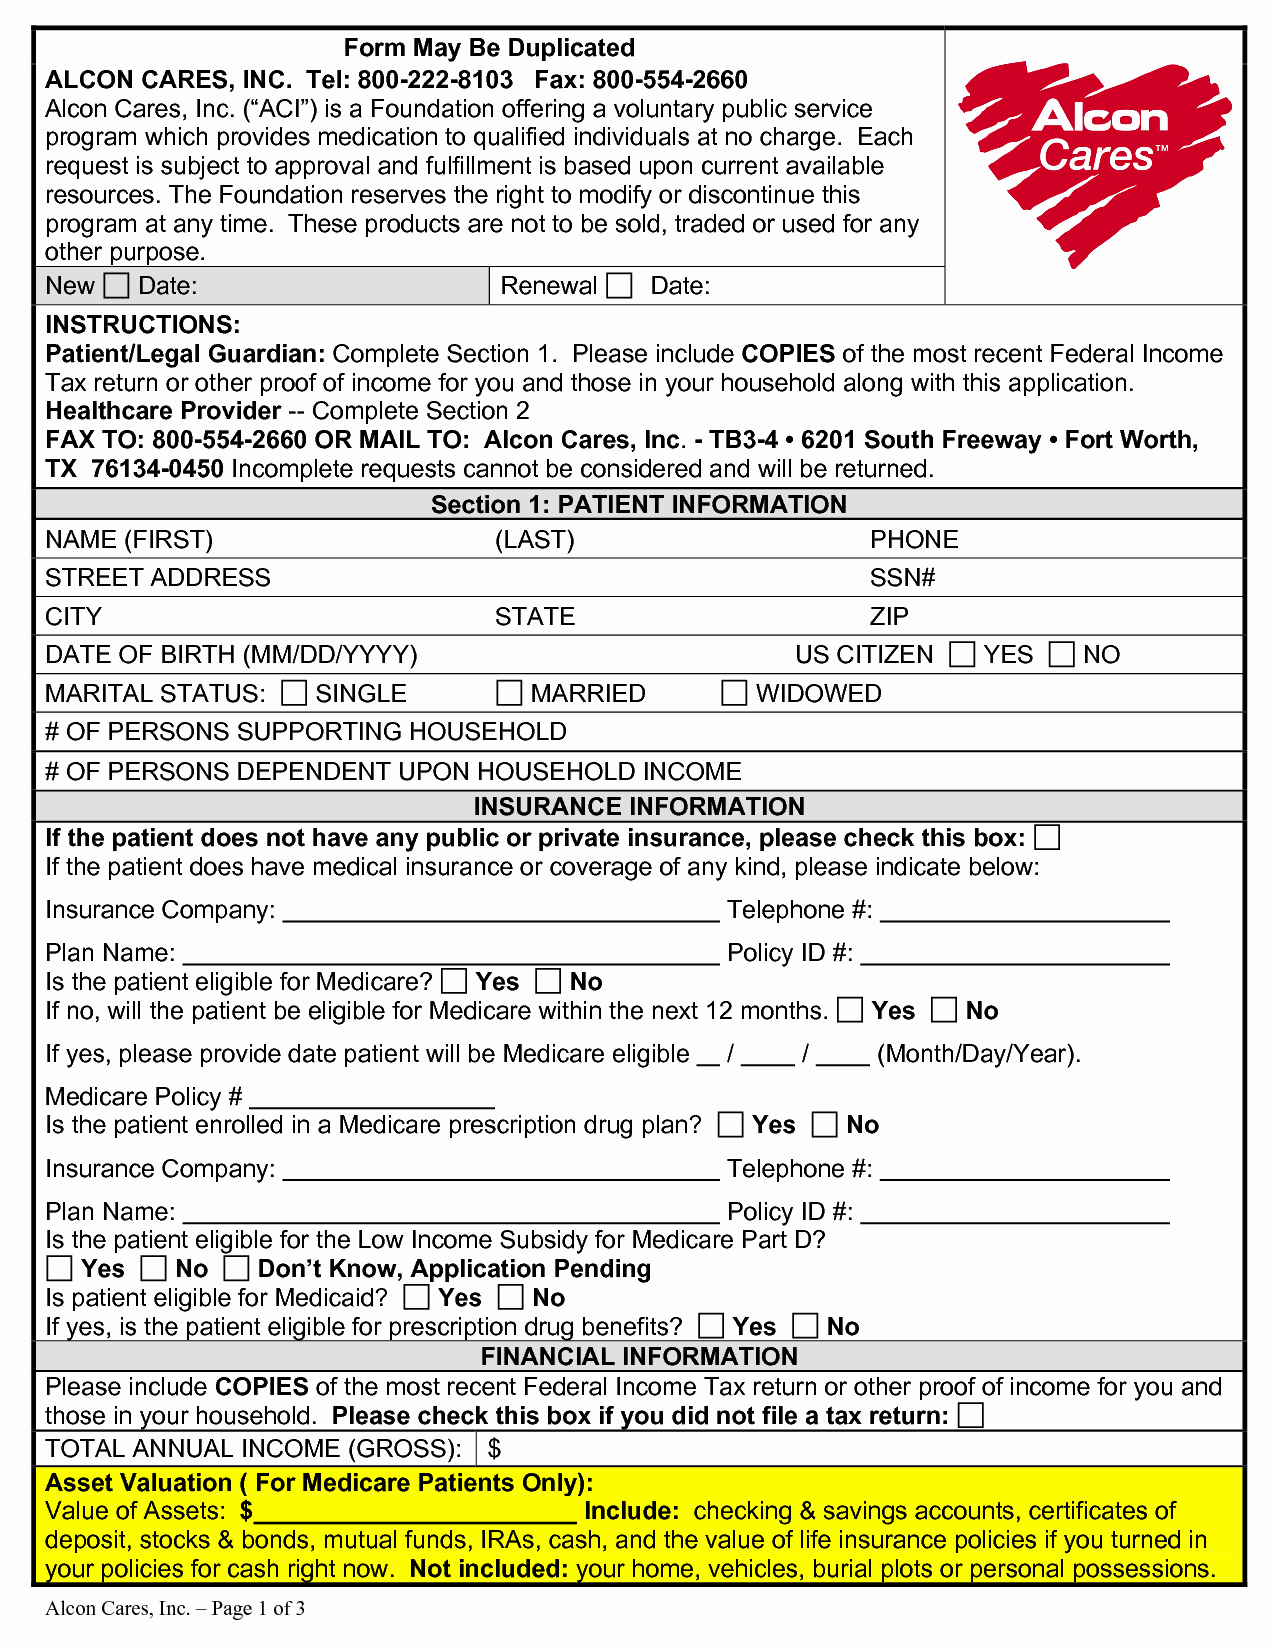 Free Printable Durable Power Of Attorney Form Az - 11.4.kaartenstemp - Free Printable Medical Power Of Attorney